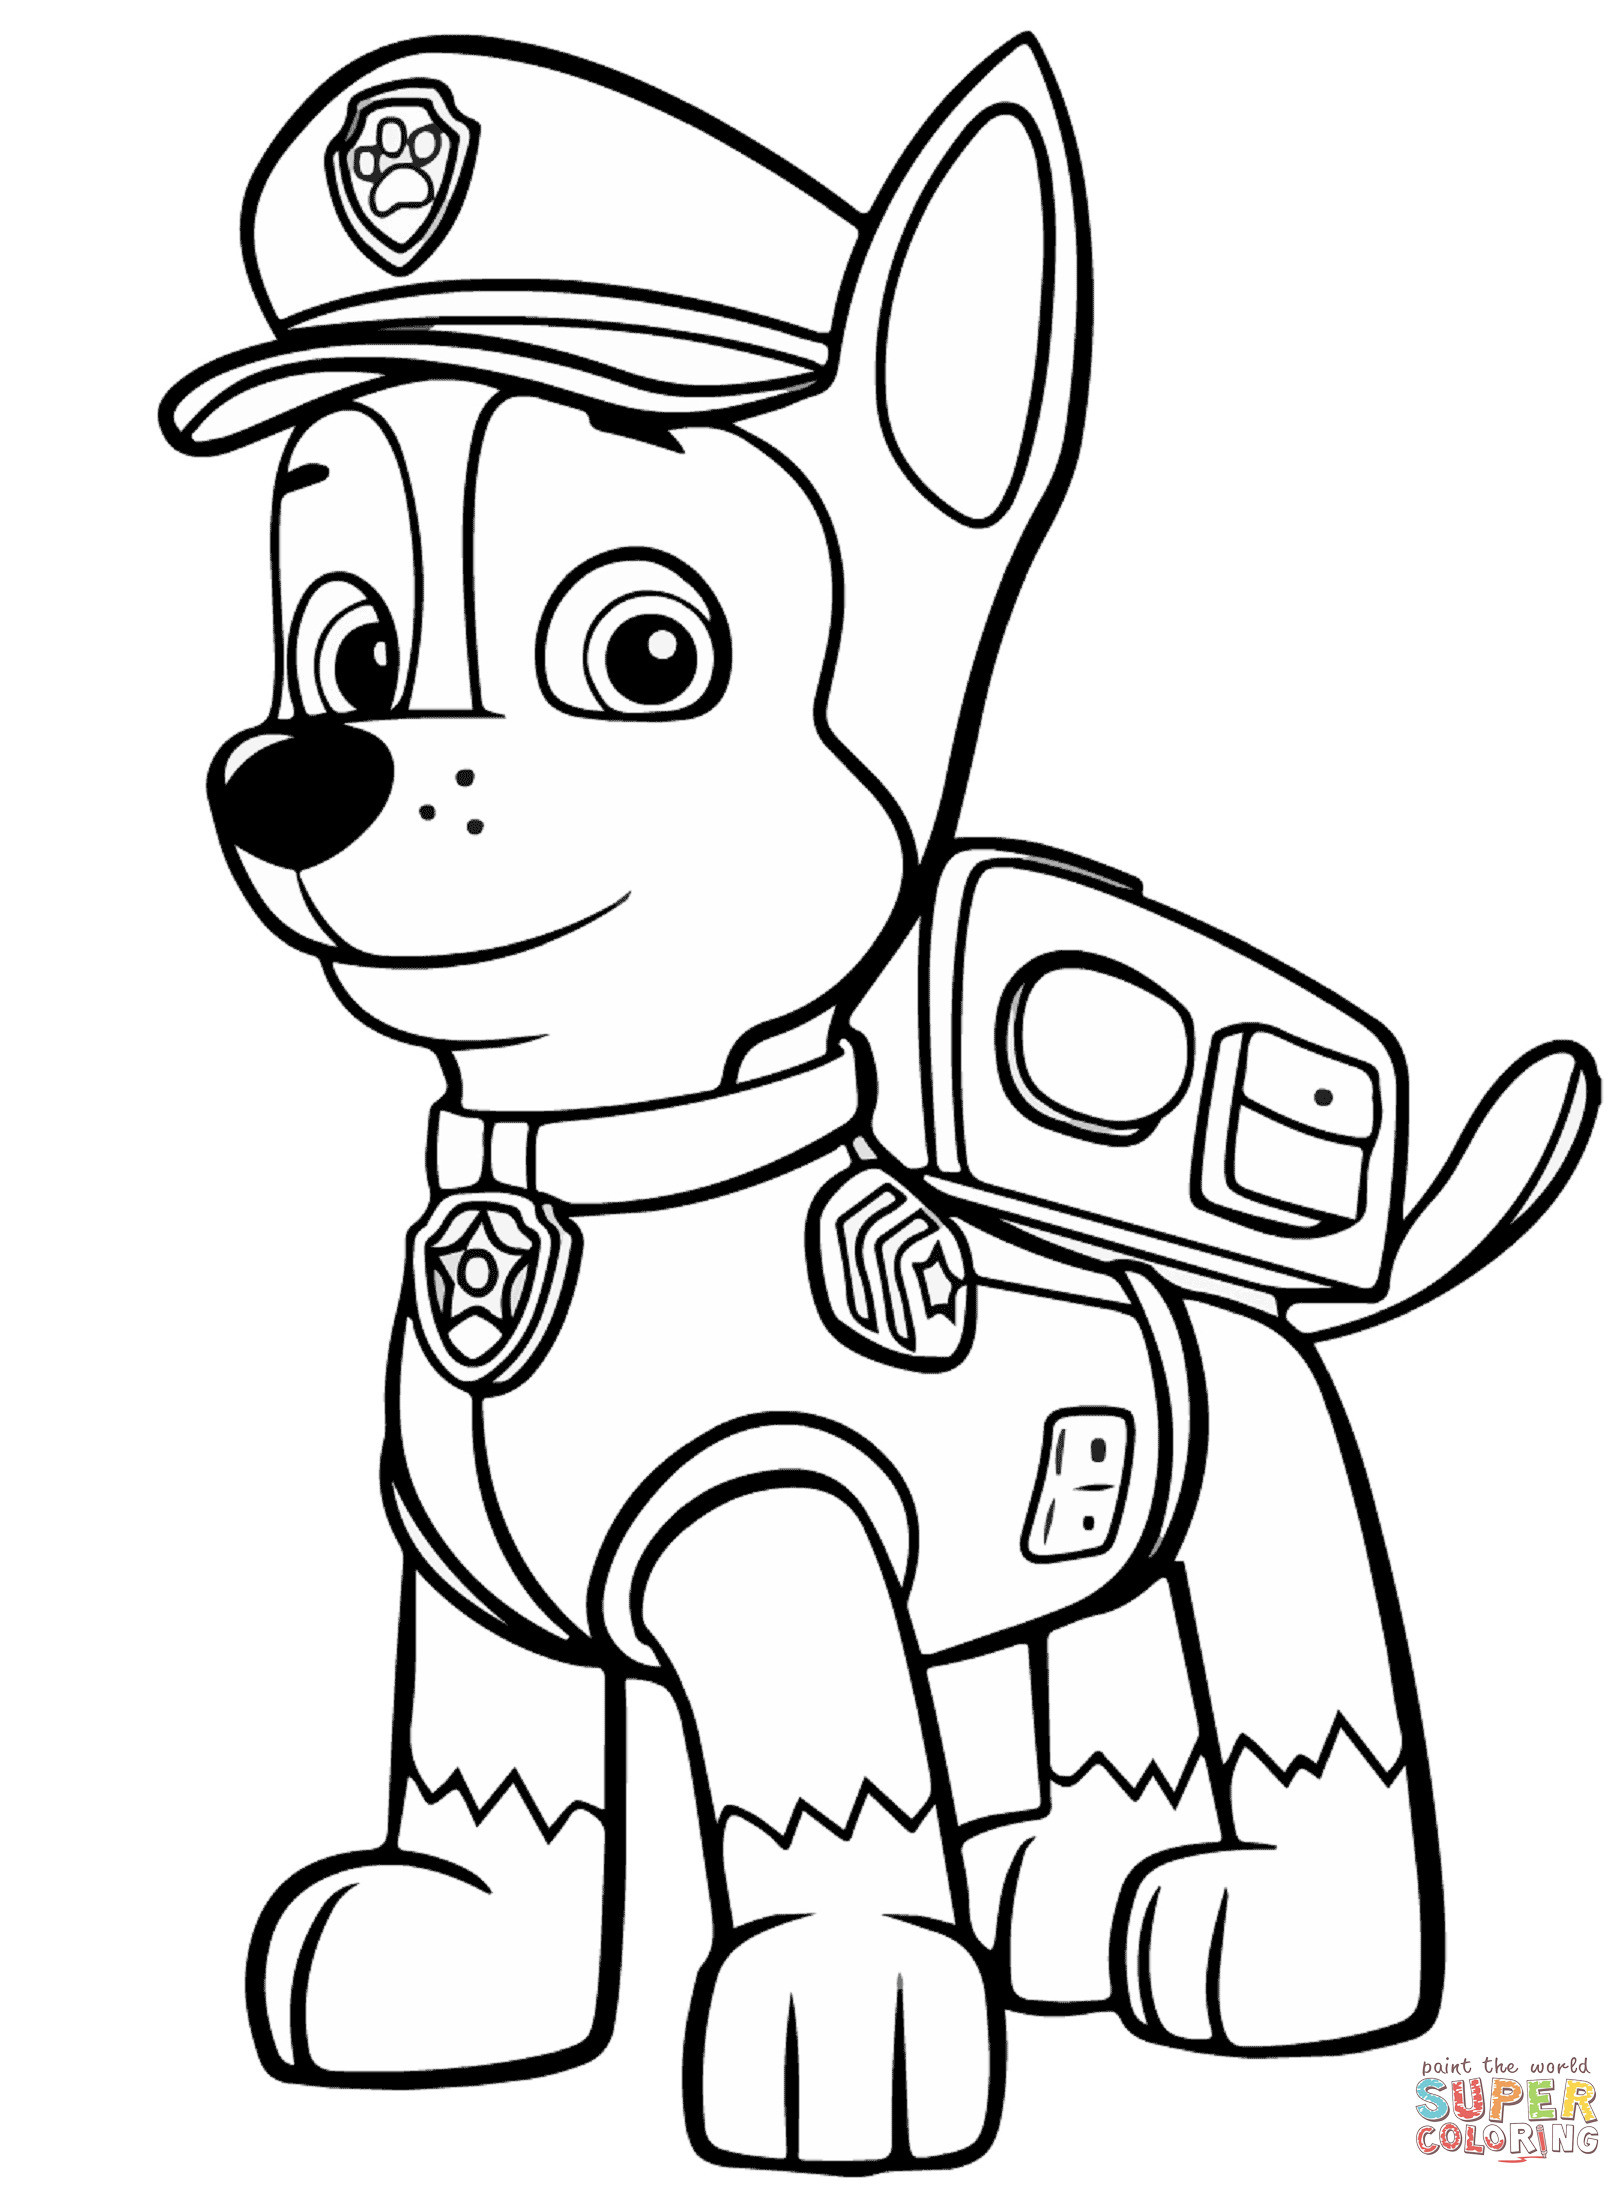 Paw Patrol Ausmalbild Das Beste Von Lovely Paw Patrol Printable Coloring Pages Coloring Pages Stock